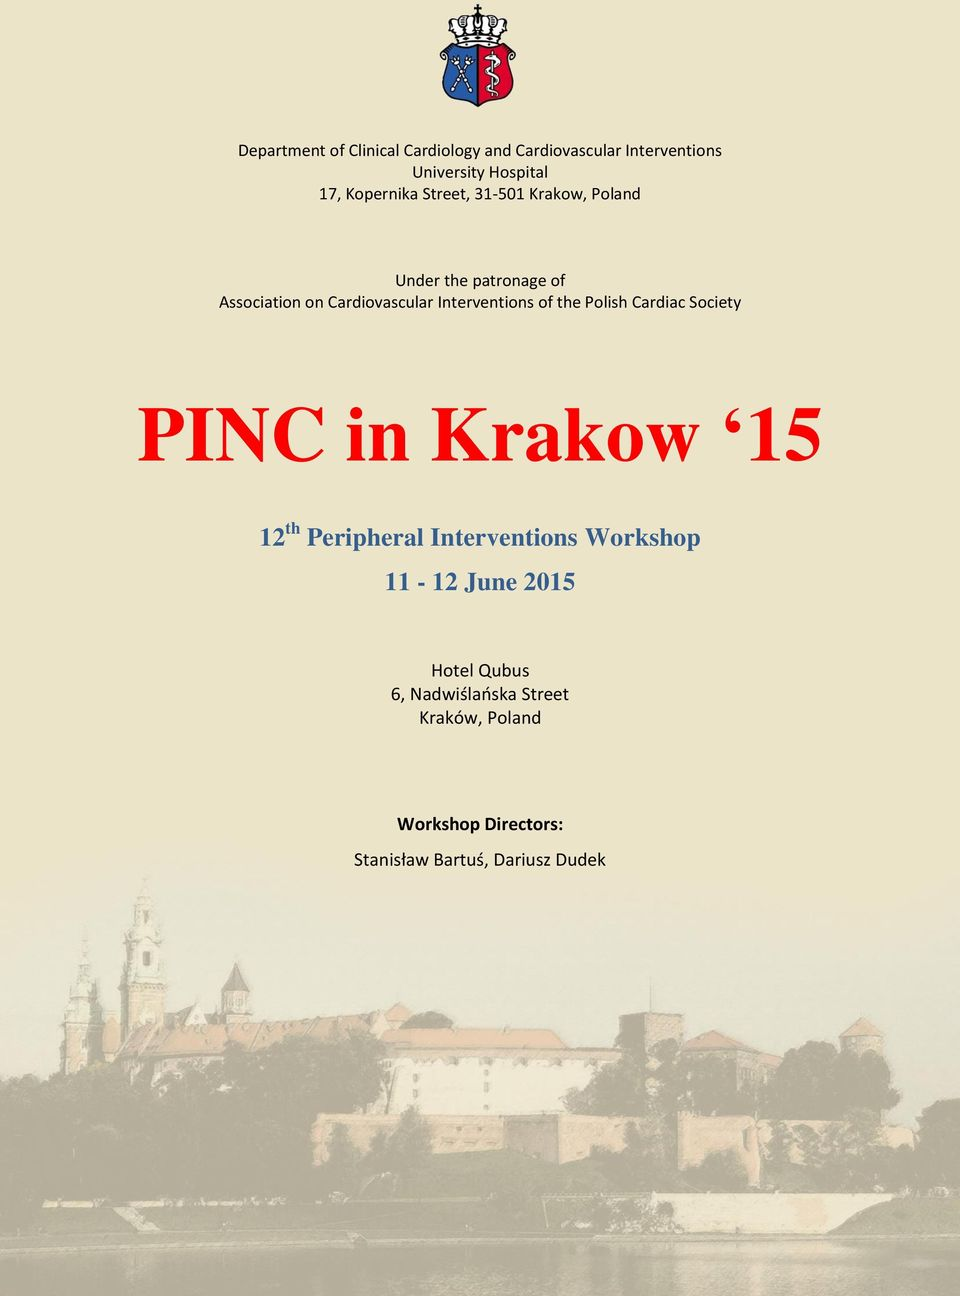 the Polish Cardiac Society PINC in Krakow 15 12 th Peripheral Interventions Workshop 11-12 June 2015